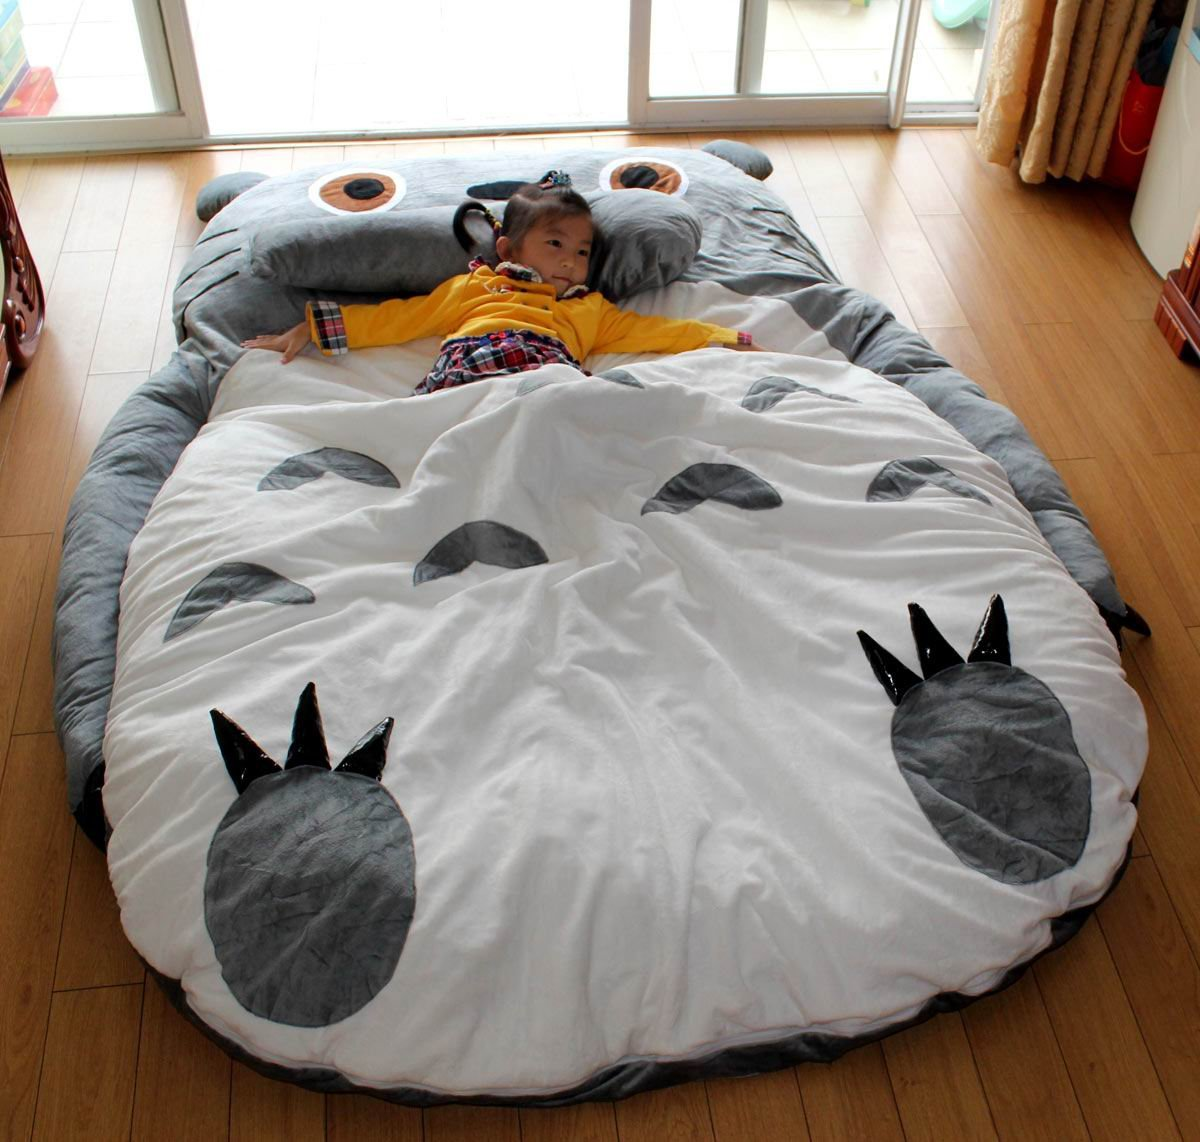 Totoro Double Bed Totoro Bed Totoro Sleeping Bag Totoro Design Bed Large Size.. 18